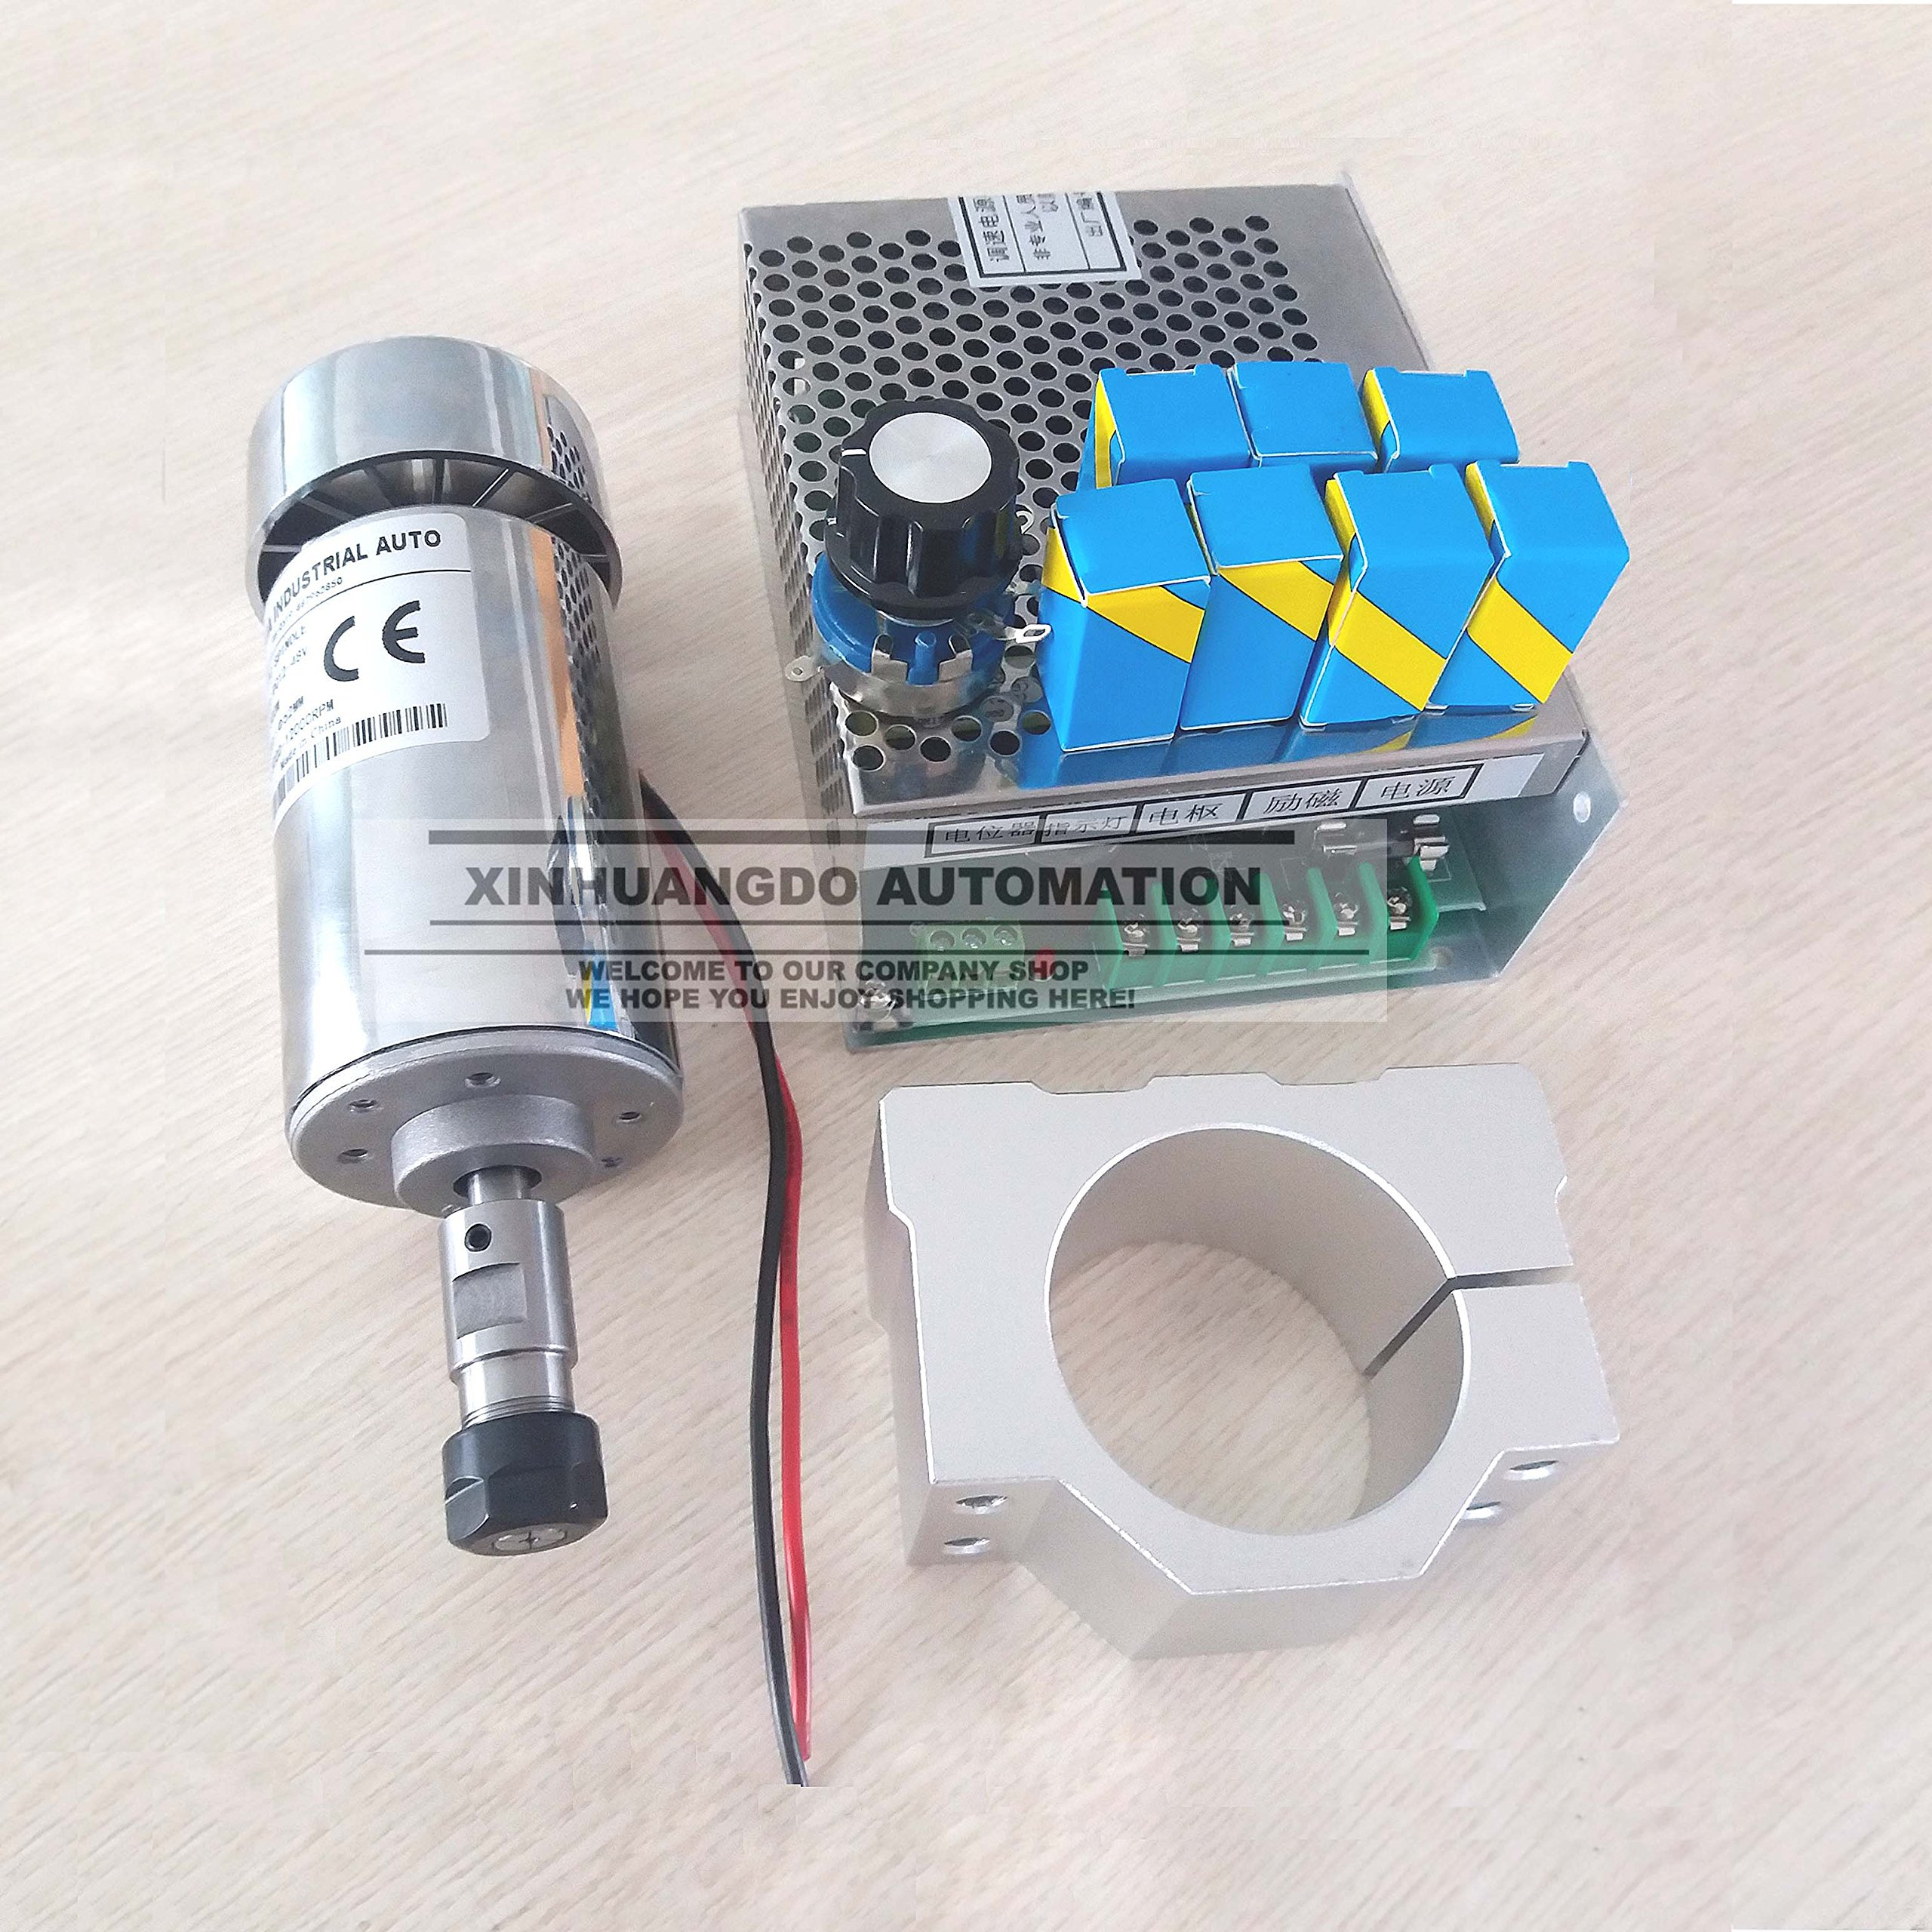 cnc spindle 300W air cooled milling Motor & spindle speed power converter &52mm clamp &7pcs er11 collet for DIY engraving